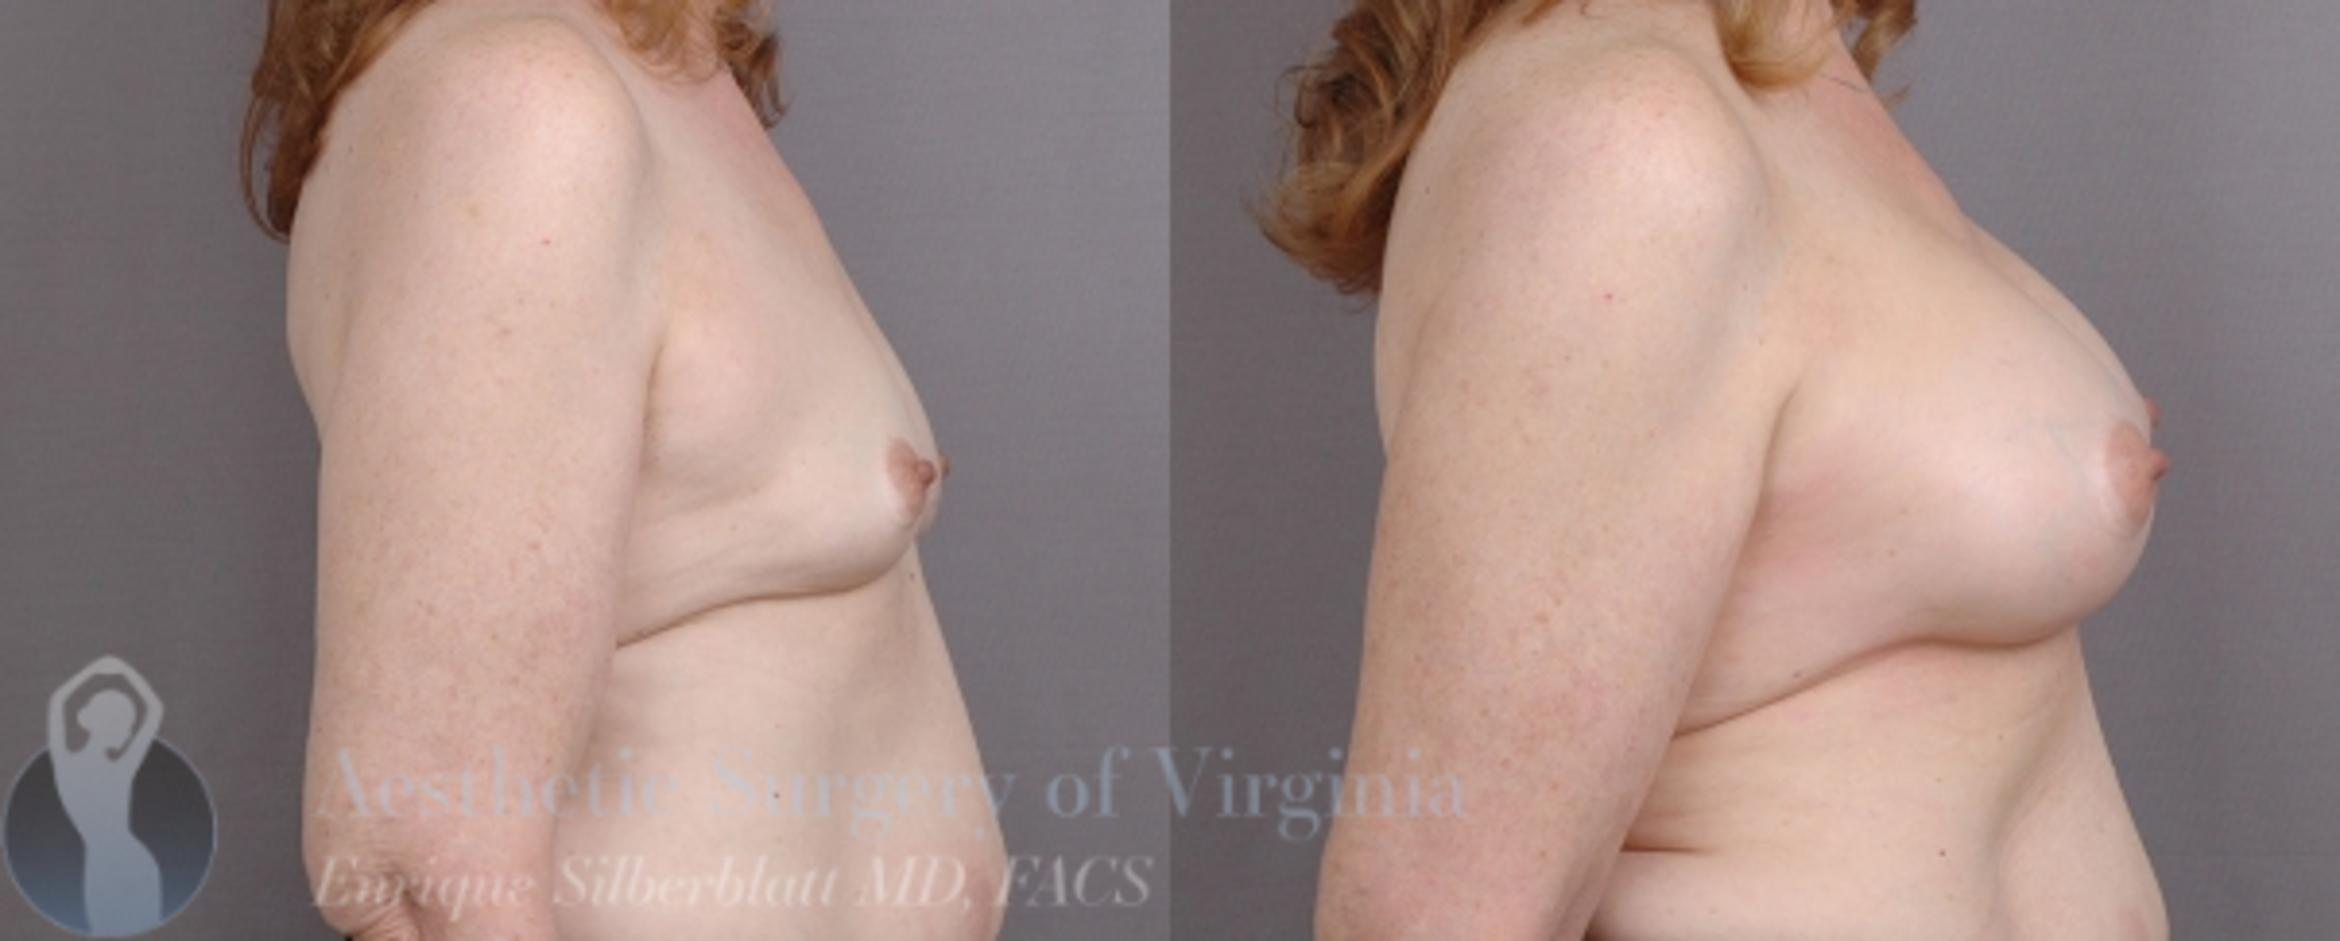 Breast Augmentation Case 16 Before & After View #5 | Roanoke, VA | Aesthetic Surgery of Virginia: Enrique Silberblatt, MD